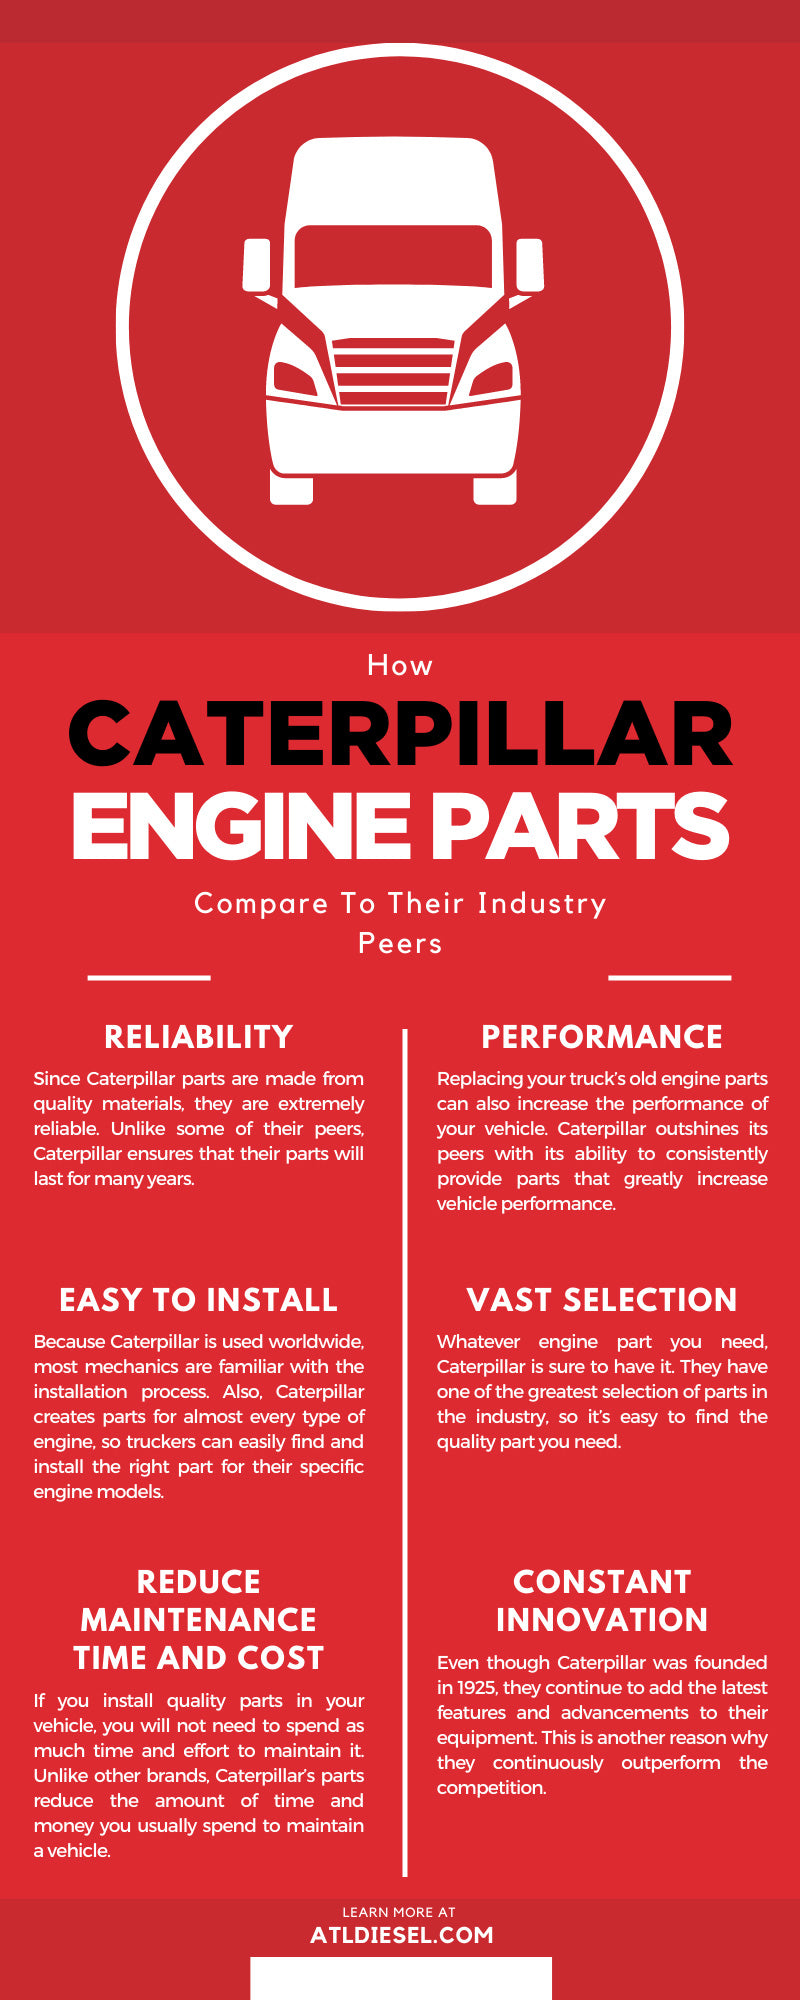 How Caterpillar Engine Parts Compare To Their Industry Peers